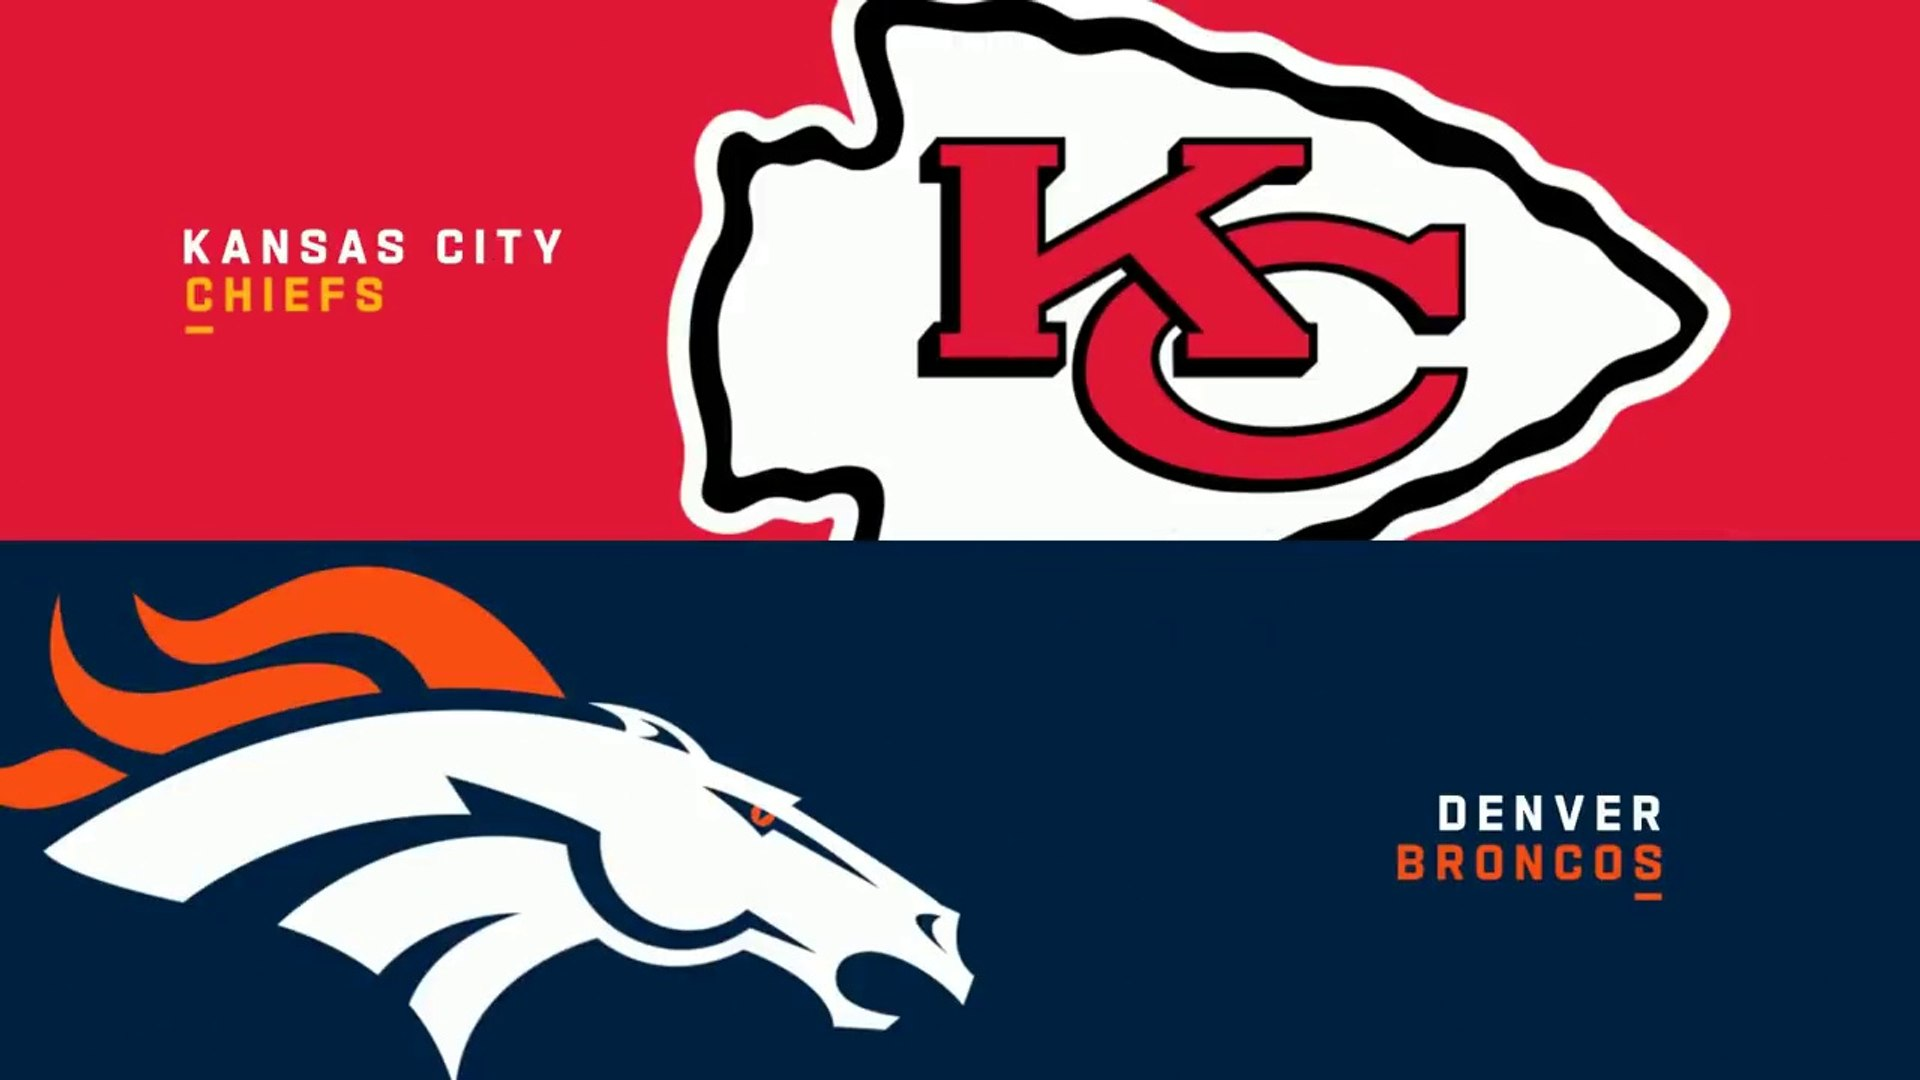 Chiefs vs. Broncos Week 7 Highlights - NFL 2019